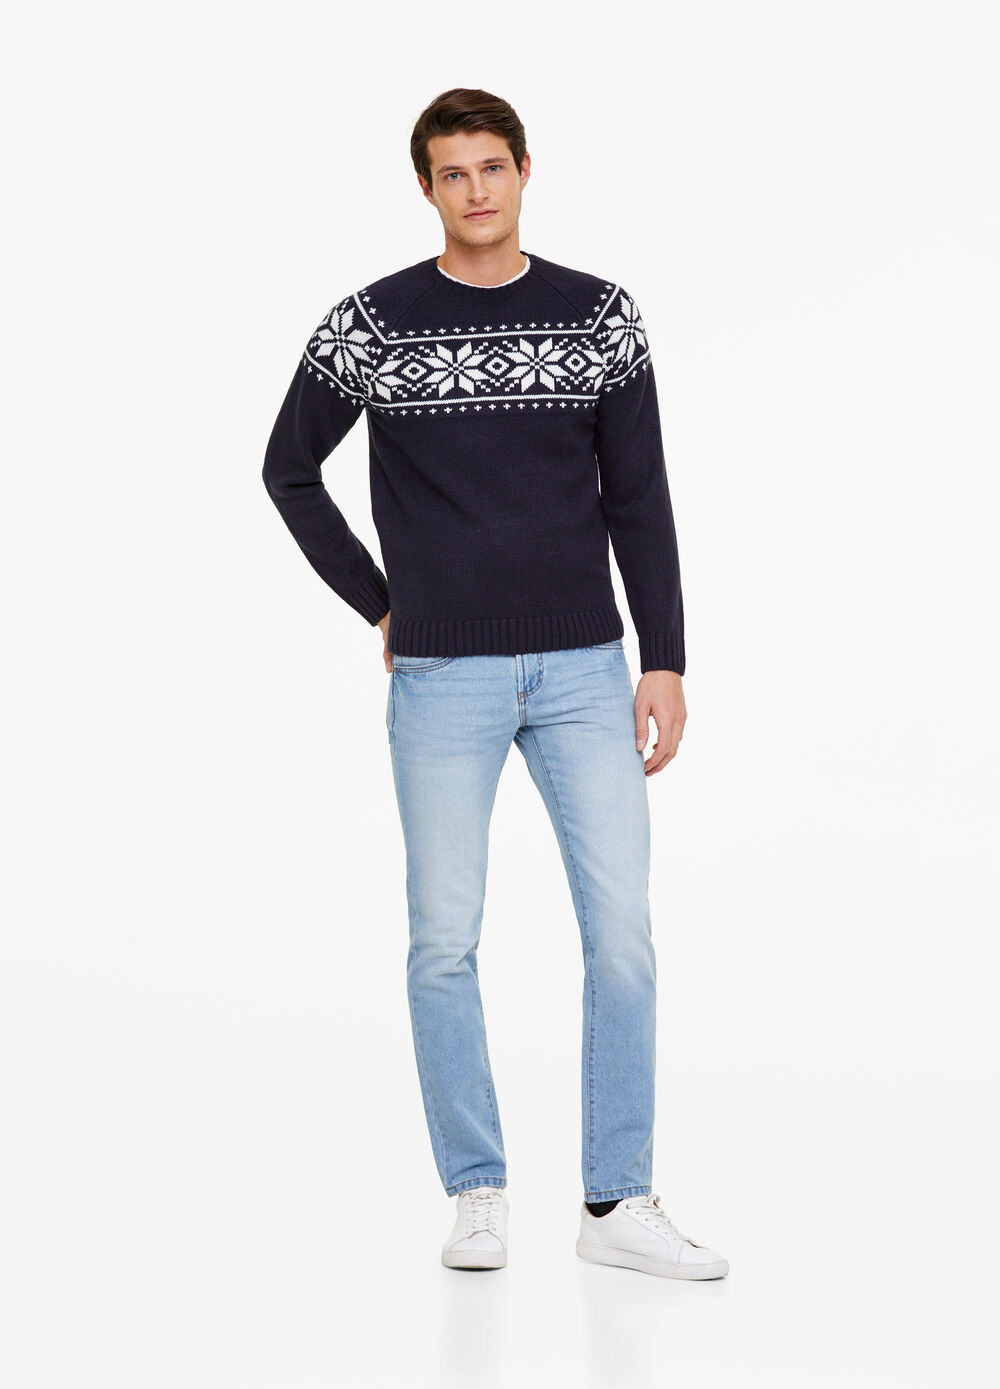 Christmas sweater with patterned insert